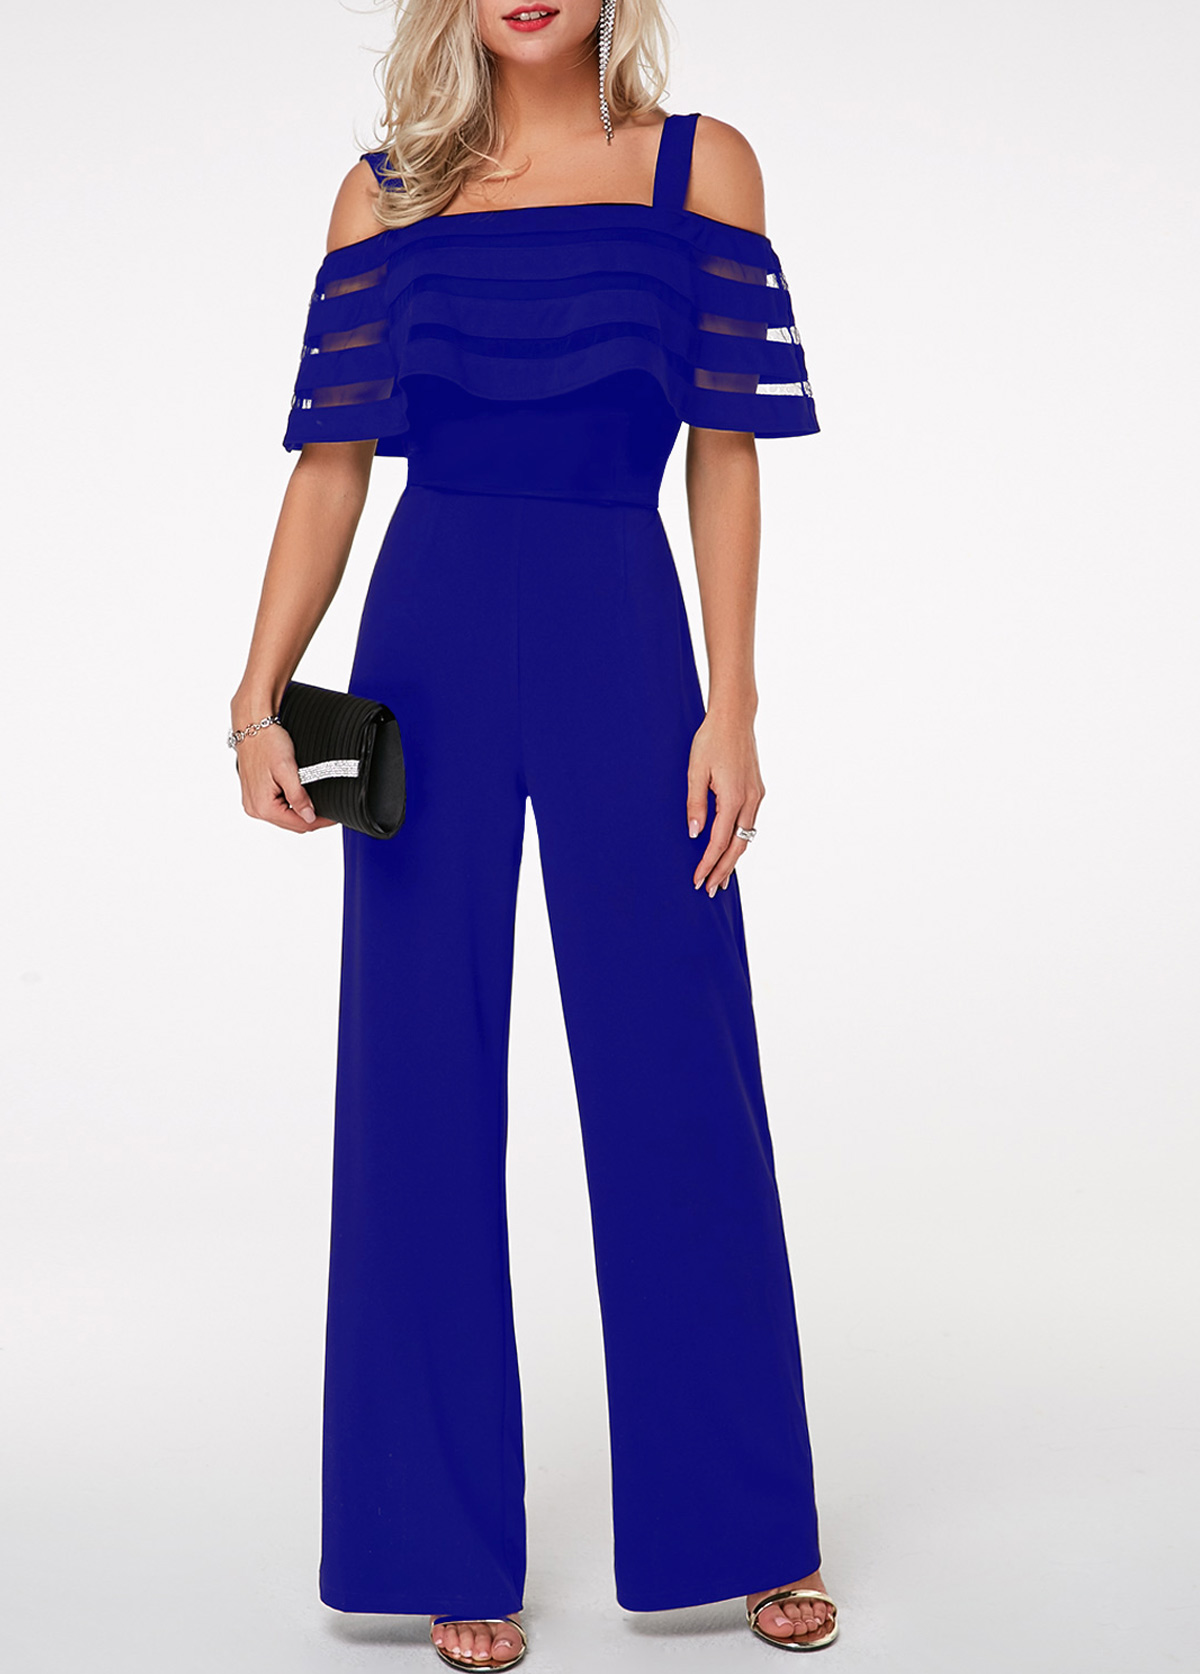 Strappy Cold Shoulder Royal Blue Overlay Jumpsuit